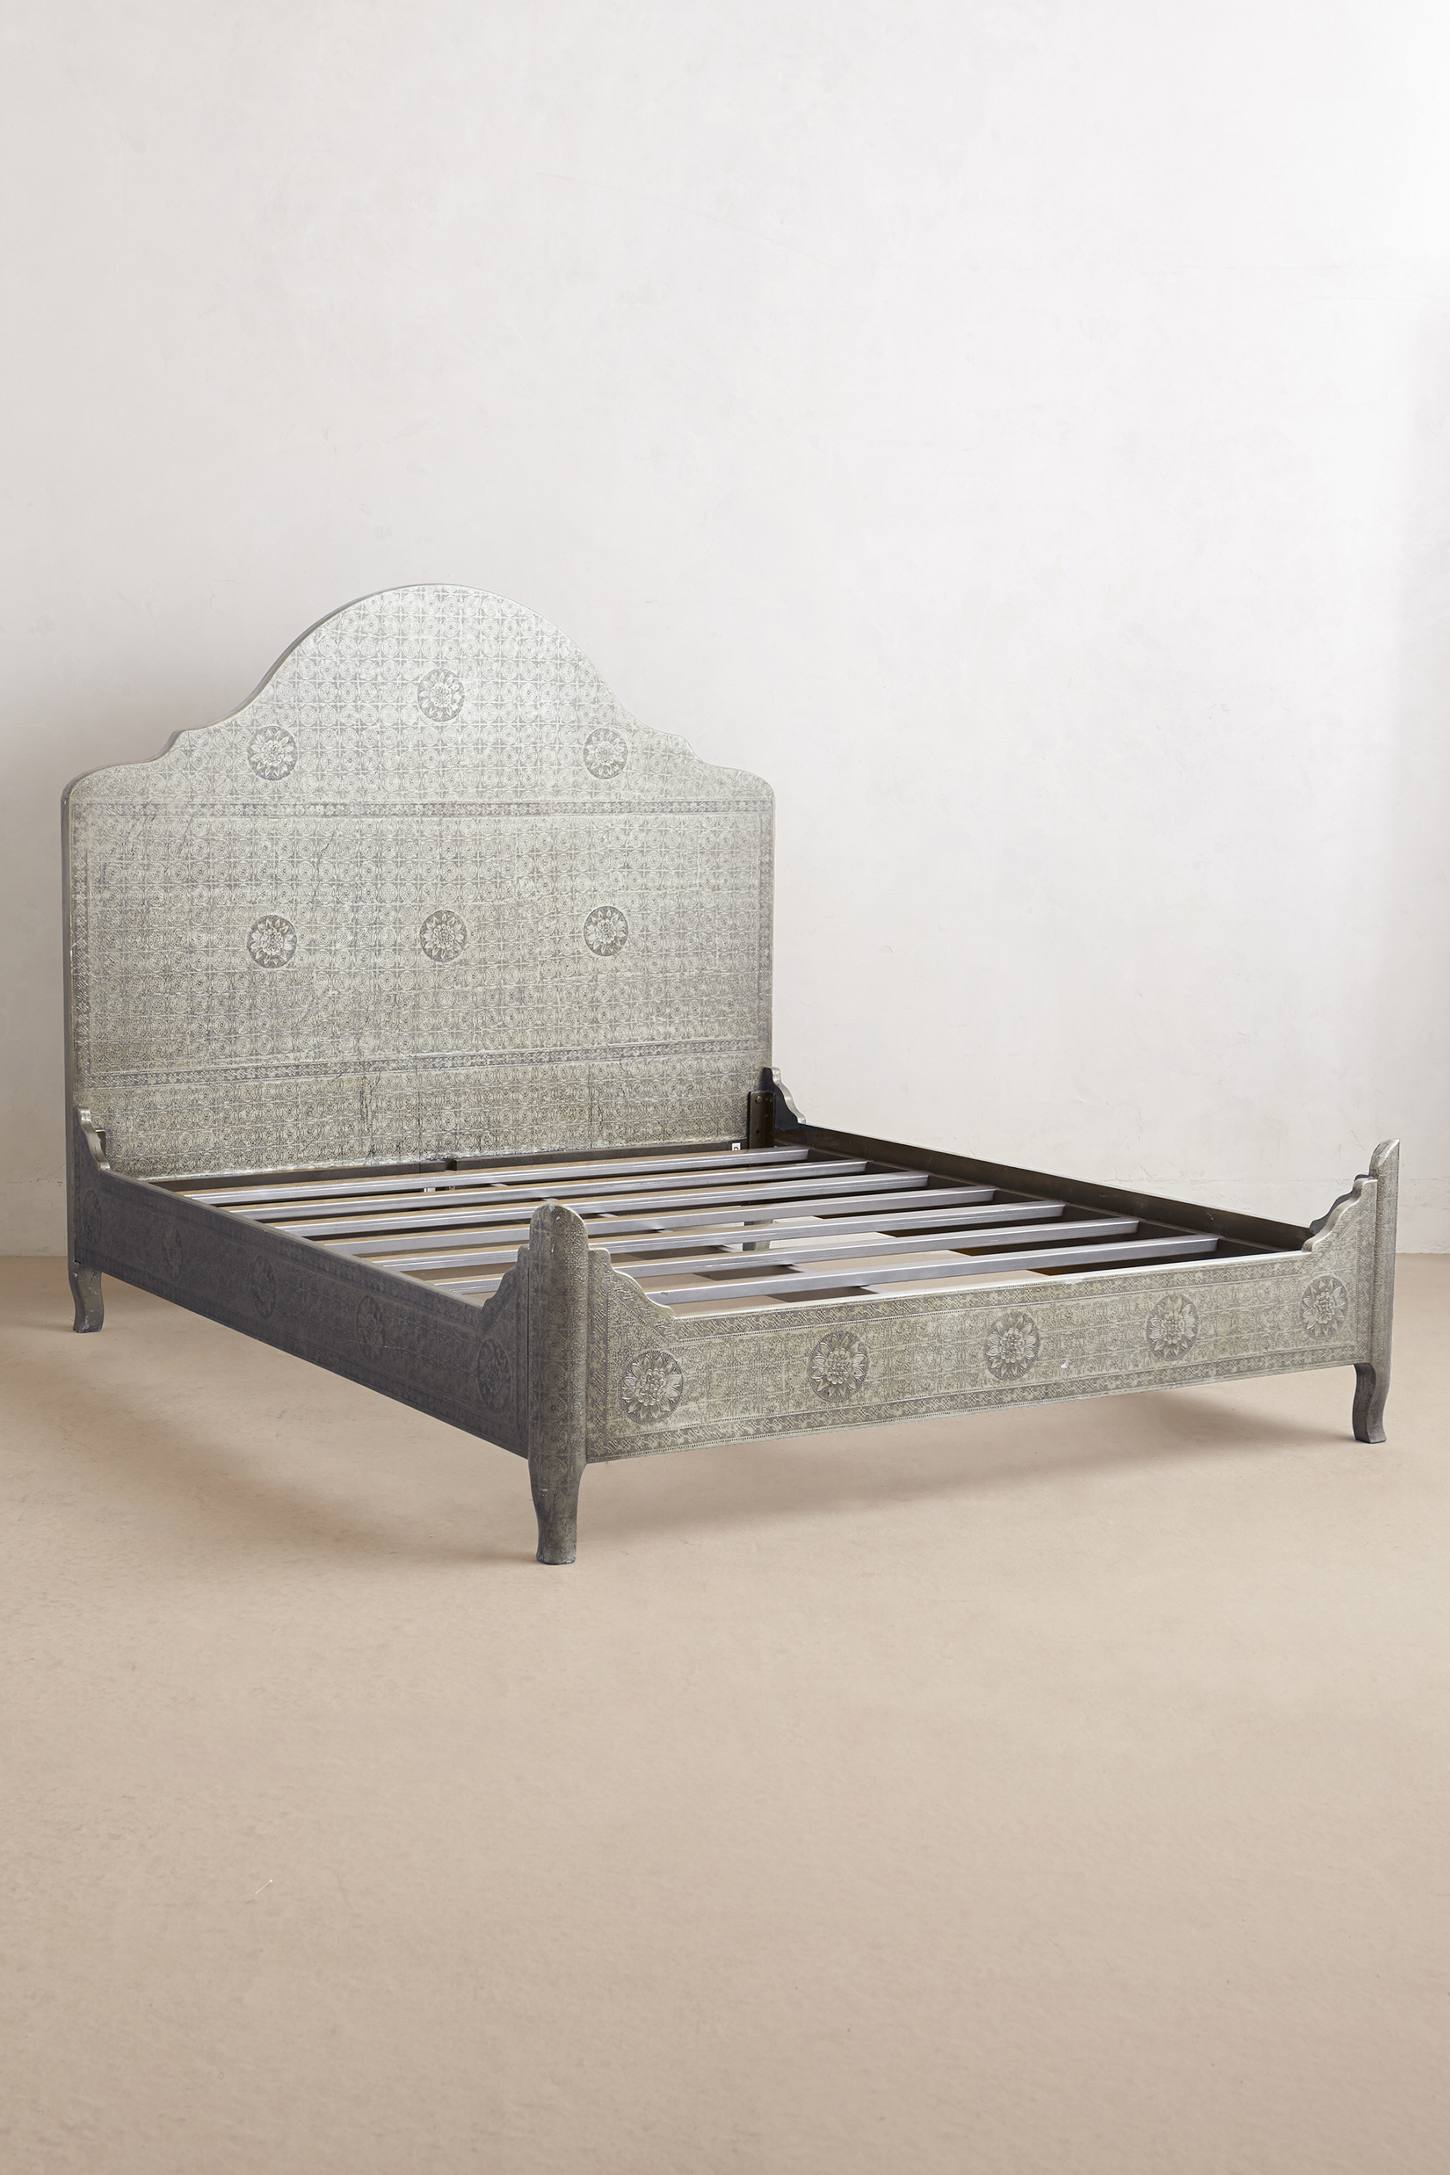 Slide View: 2: Hand-Embossed Bed